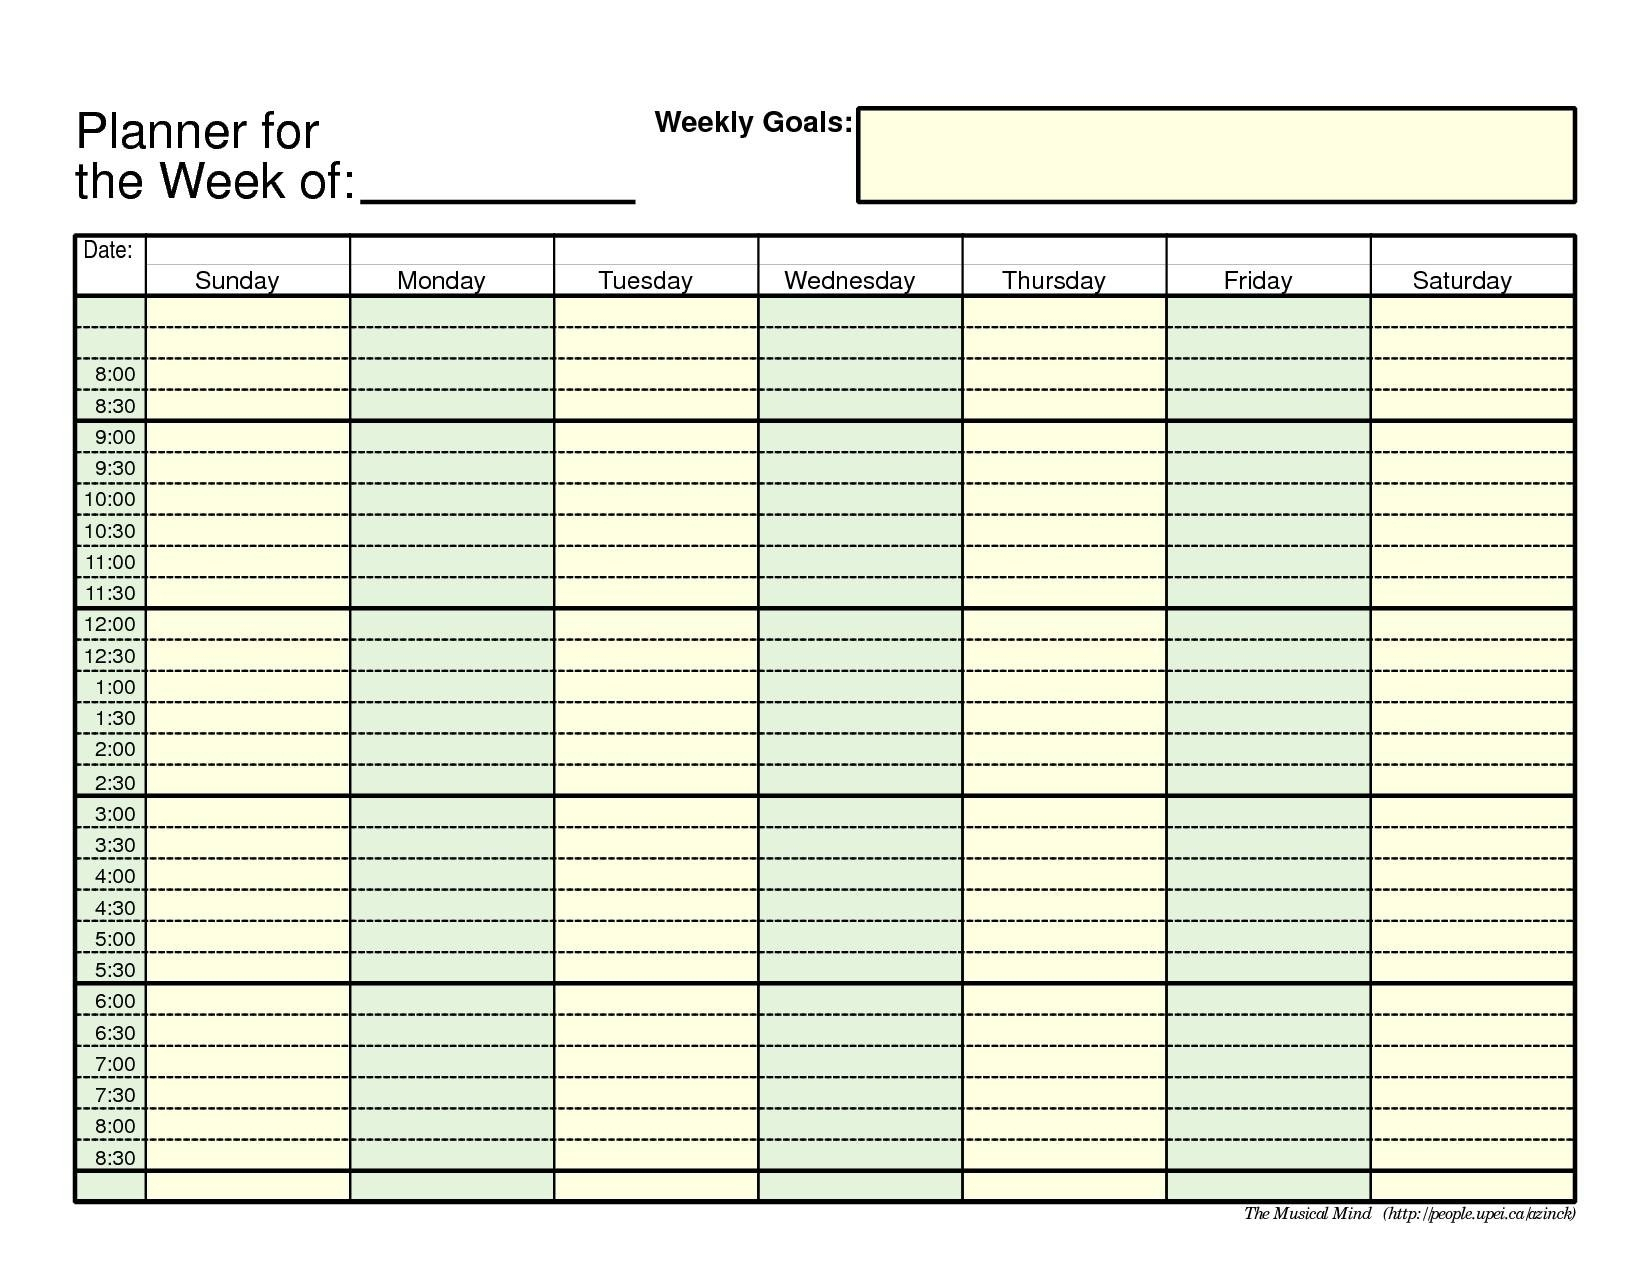 Daily Schedule With Time Slots | Template Calendar Printable with Blank Daily Schedule With Time Slots